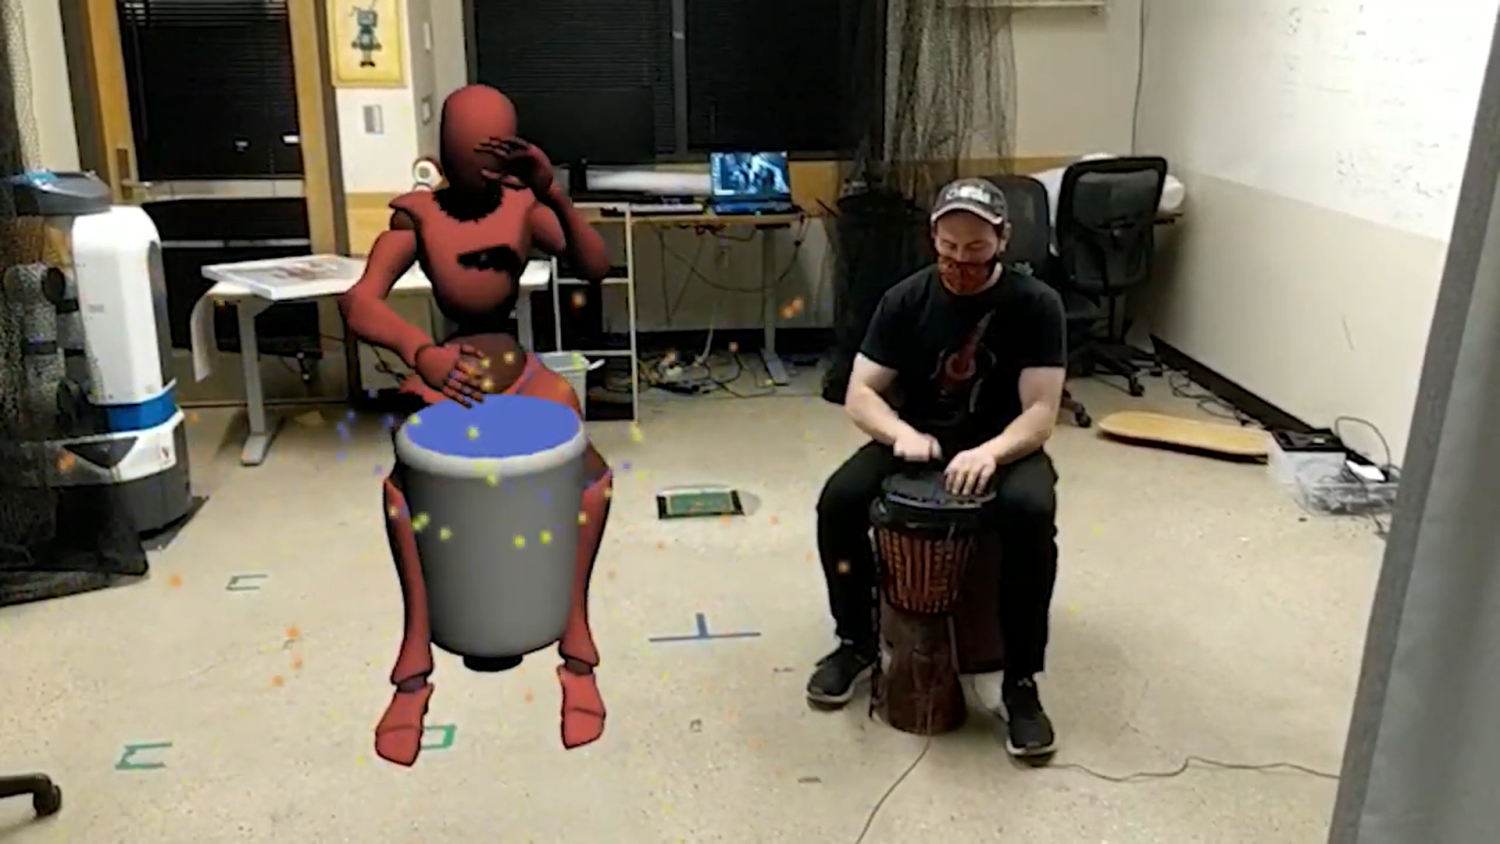 Torin Hopkins beats on a drum next to an avatar also beating on a drum.